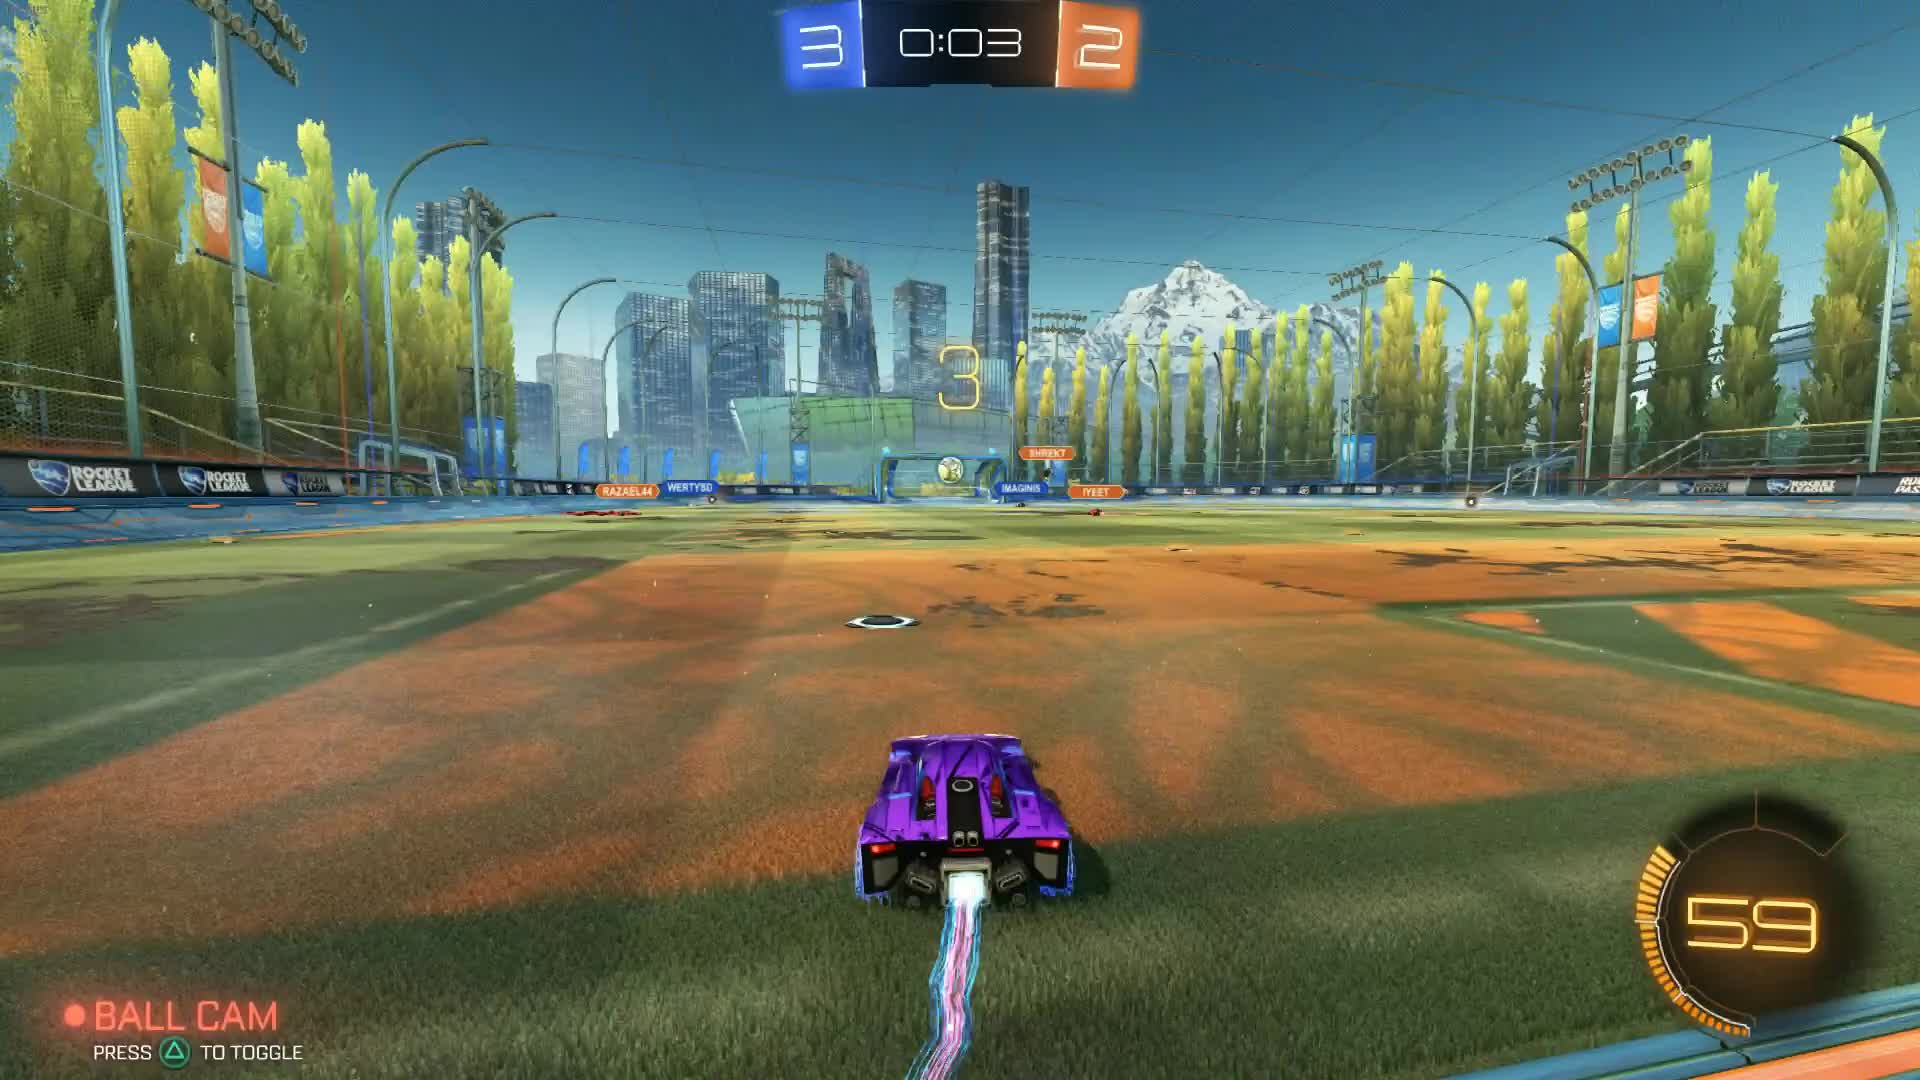 rocketleague, Smooth transition GIFs